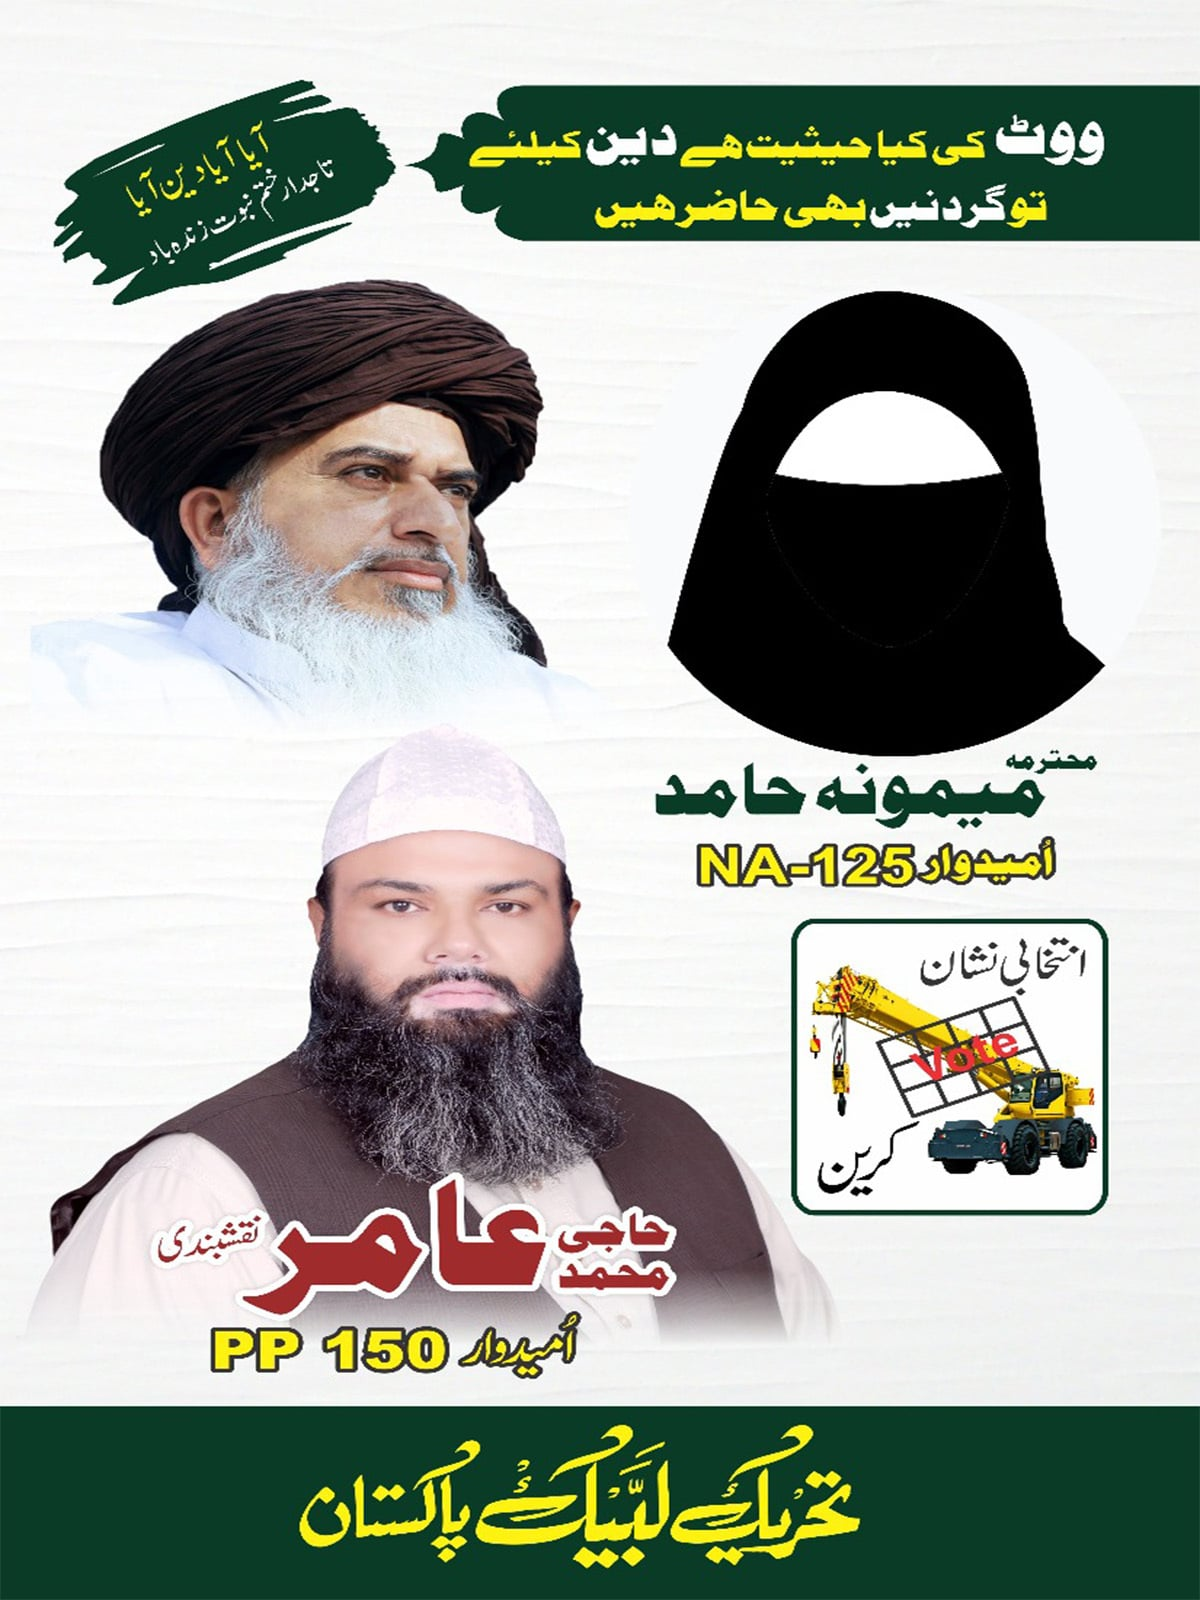 A woman candidate on the poster of Tehreek-e-Labbaik Pakistan